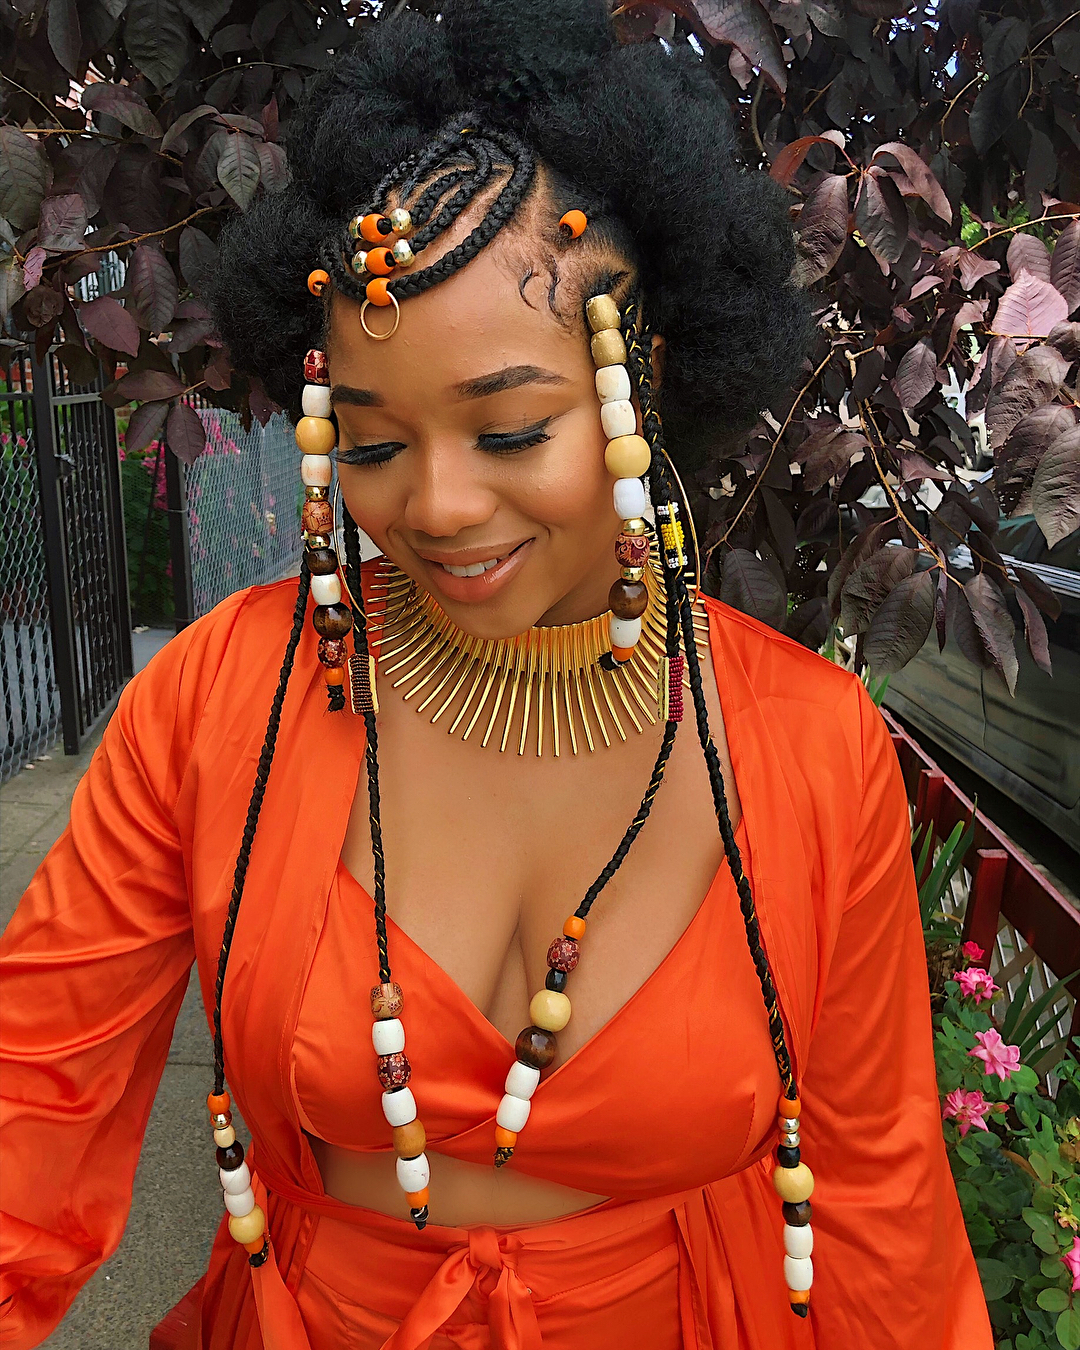 Nneoma's Tribal Hairdo would inspire your Summer beauty Moodboard